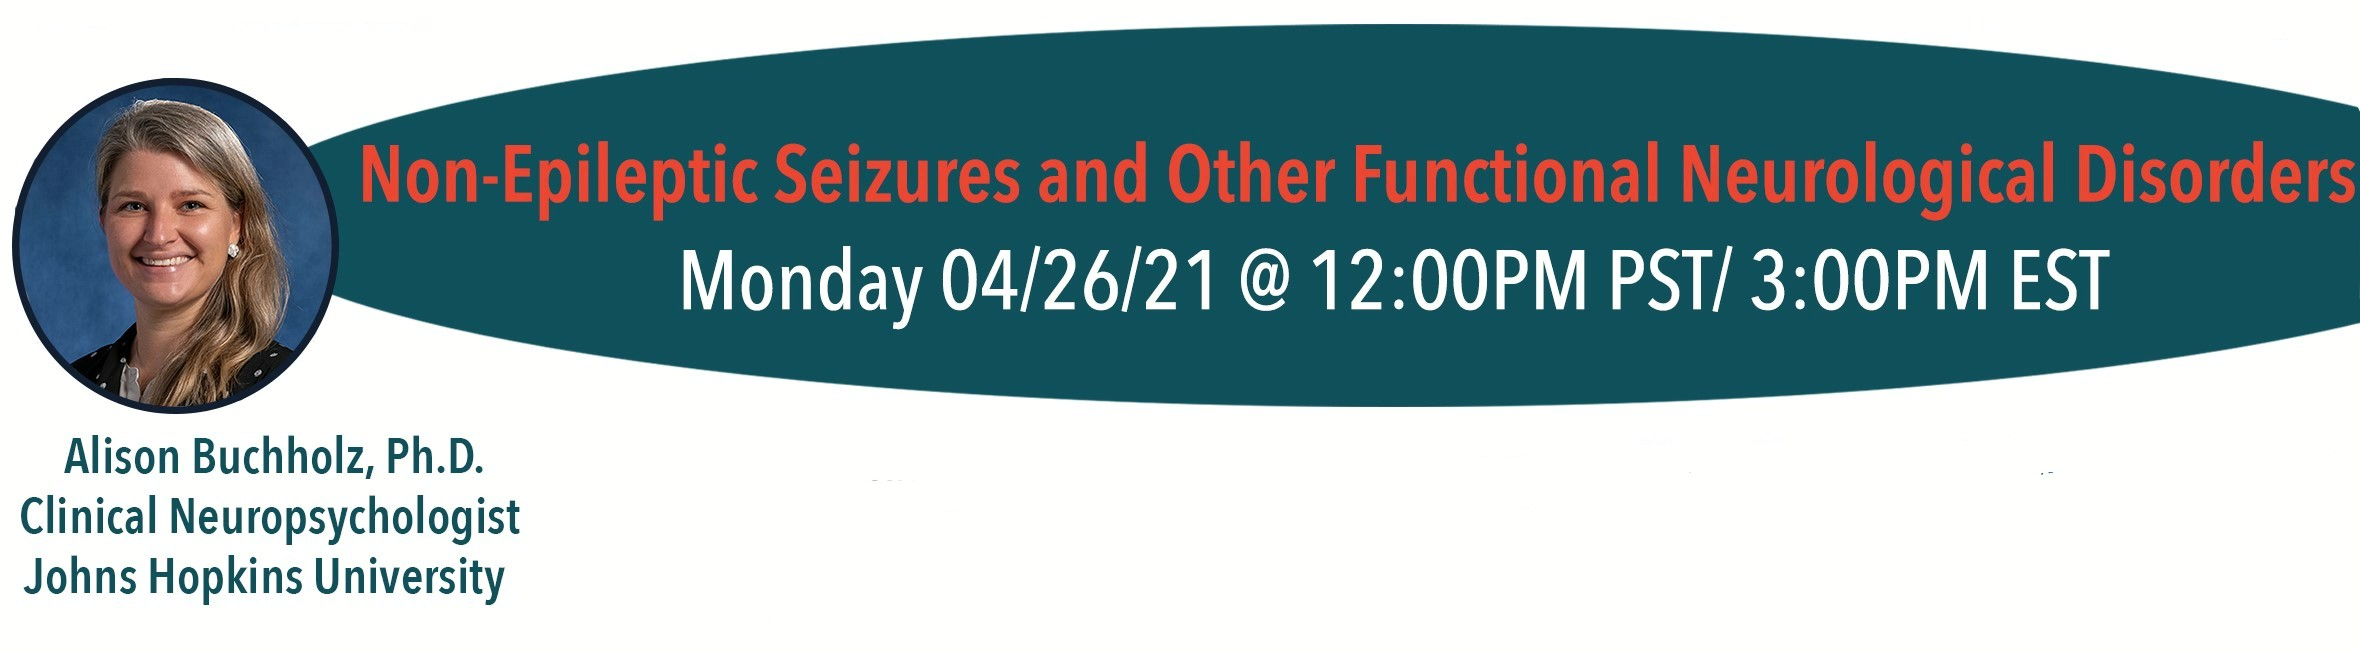 Non-epileptic seizures and other functional neurological disorders with Dr. Alison Buchholz